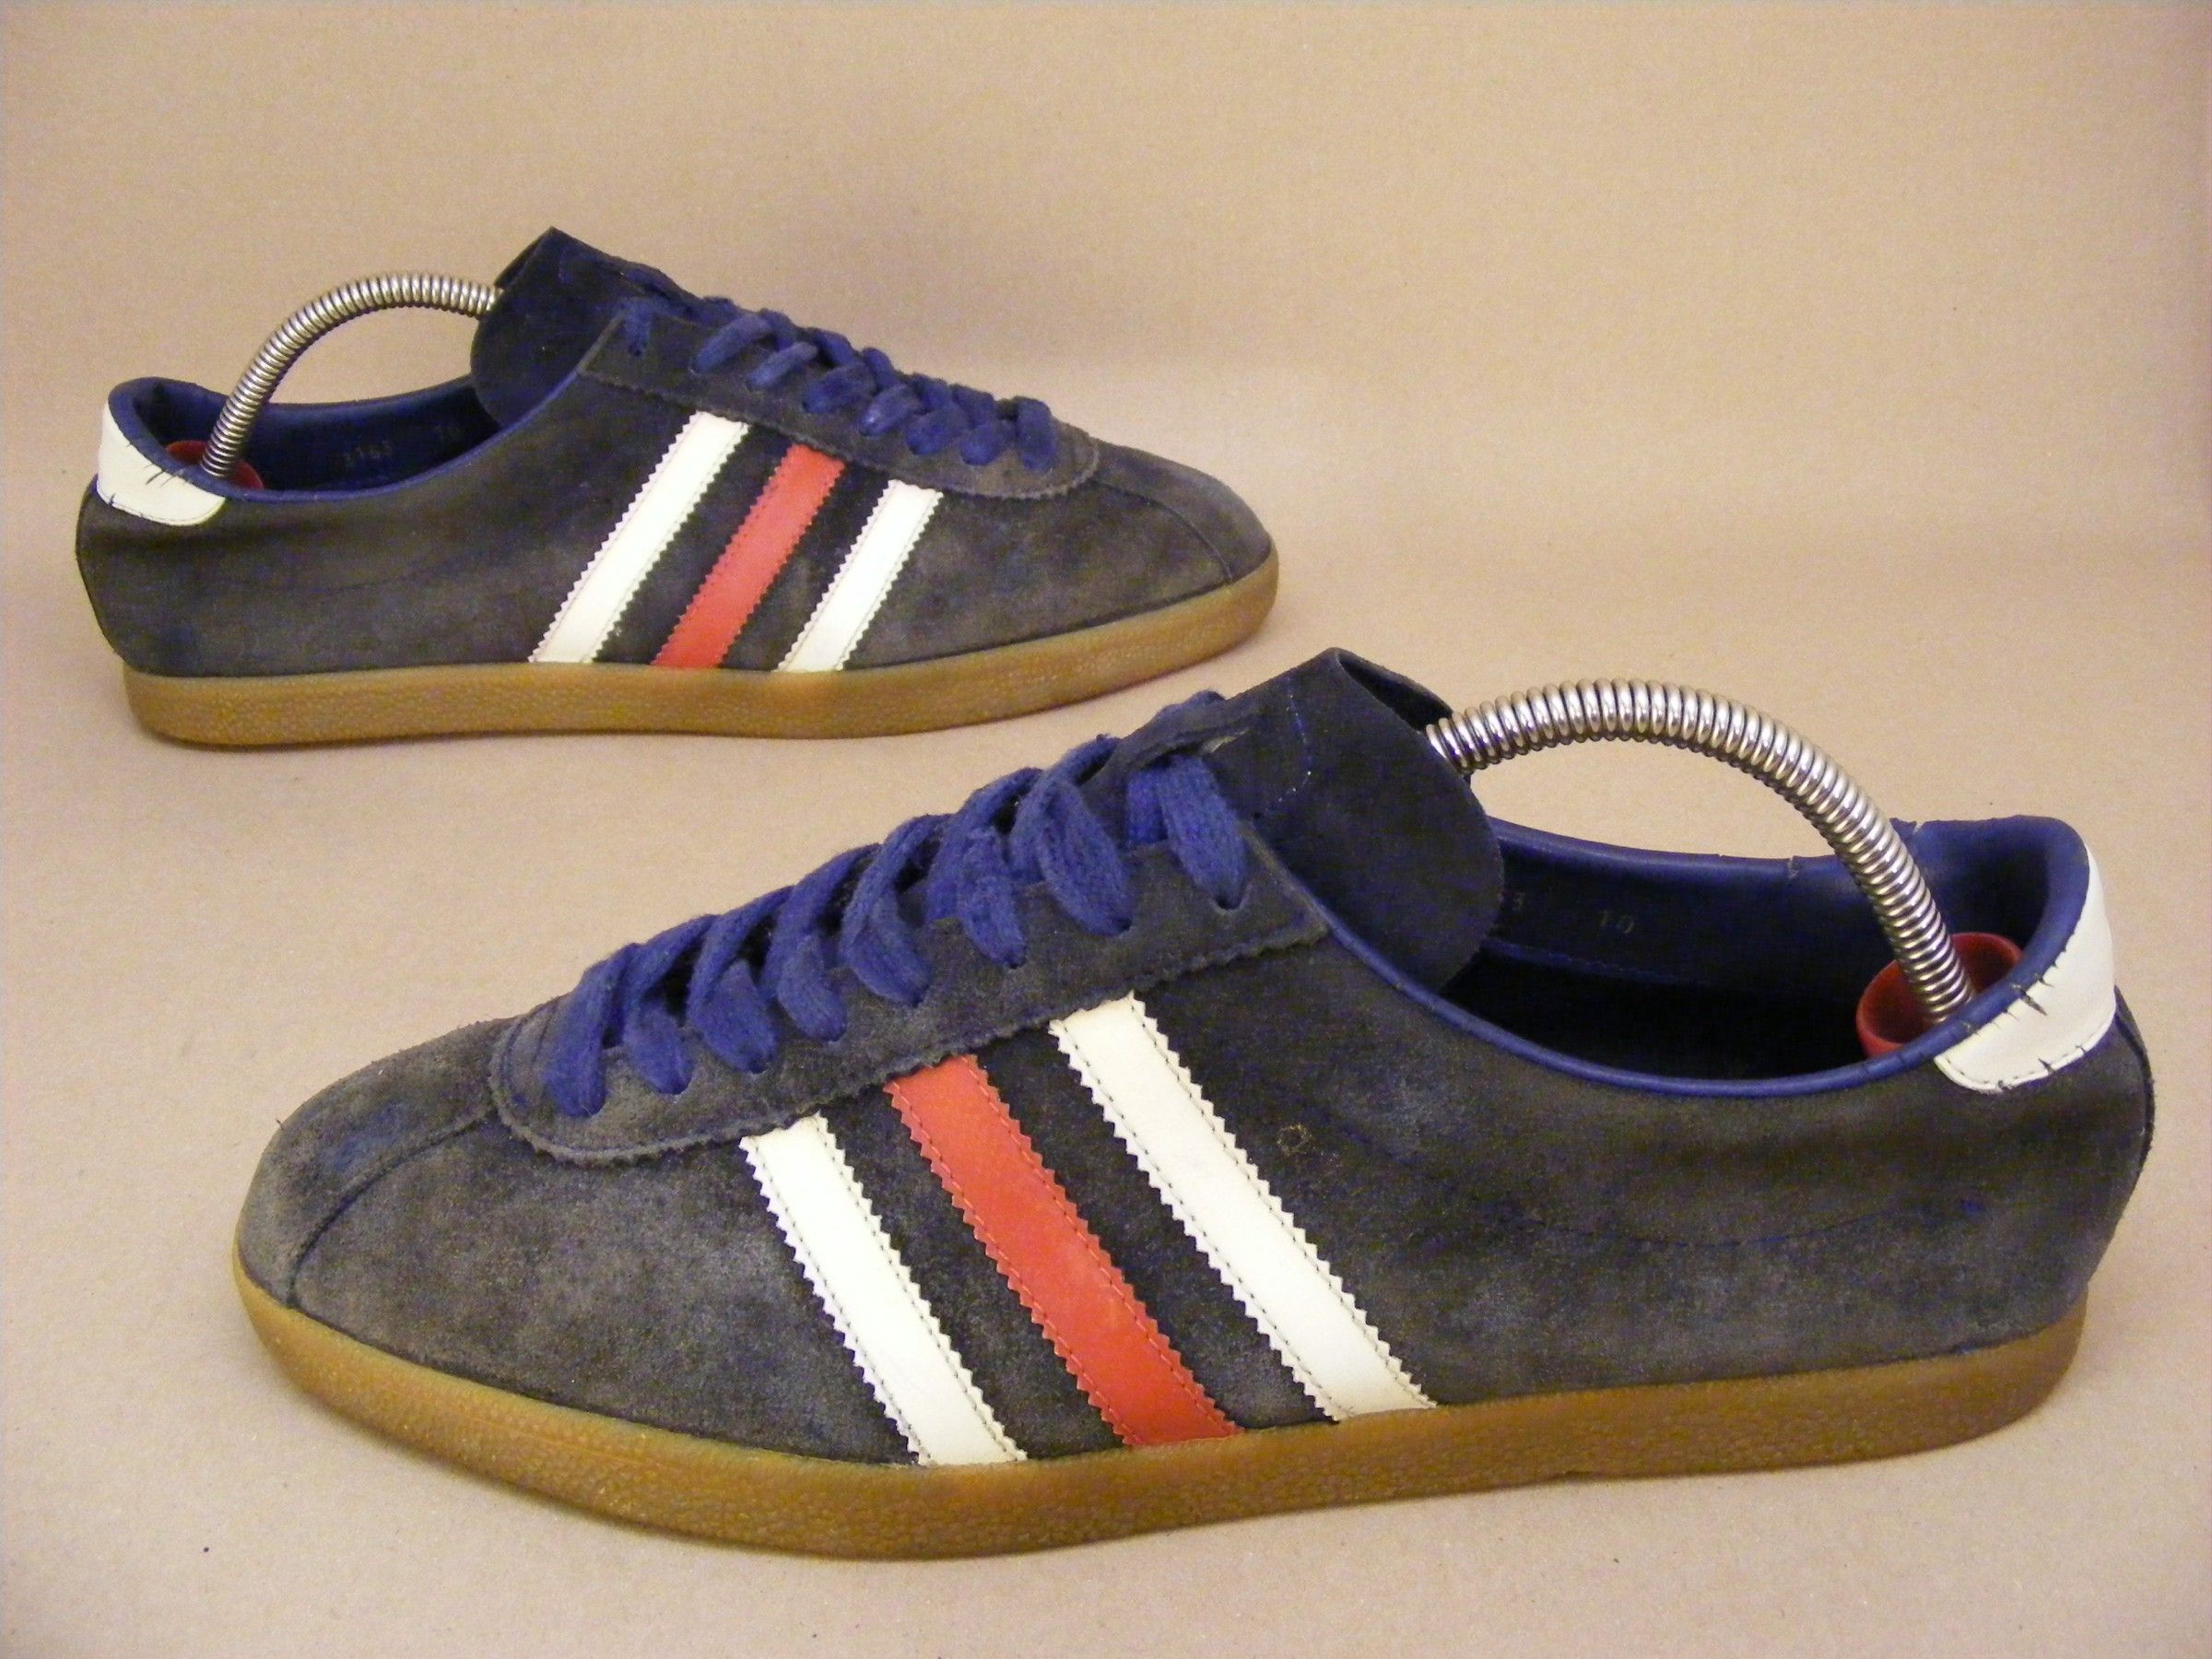 Vintage Adidas K 246 Ln Art 3153 10 Trainers Sneakers Shoes